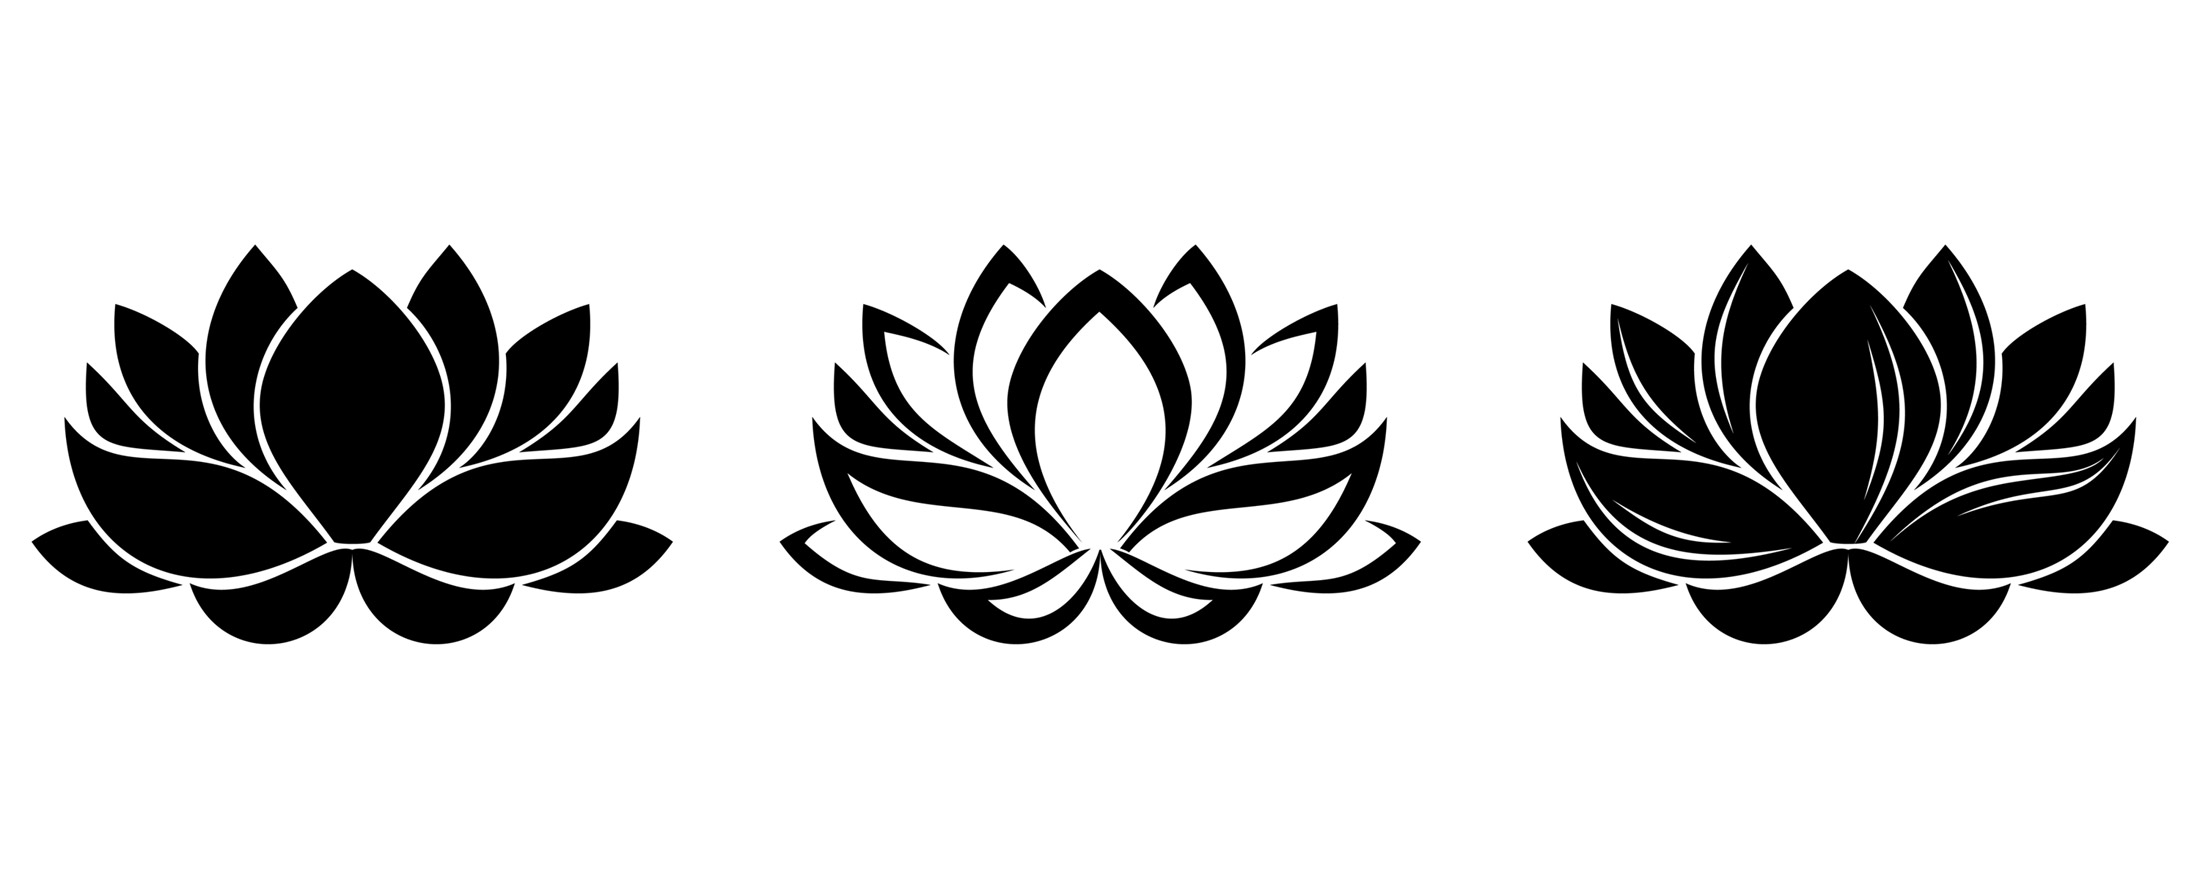 Lotus Flower Line Drawing Vector Free Download : Lotus clipart clipground